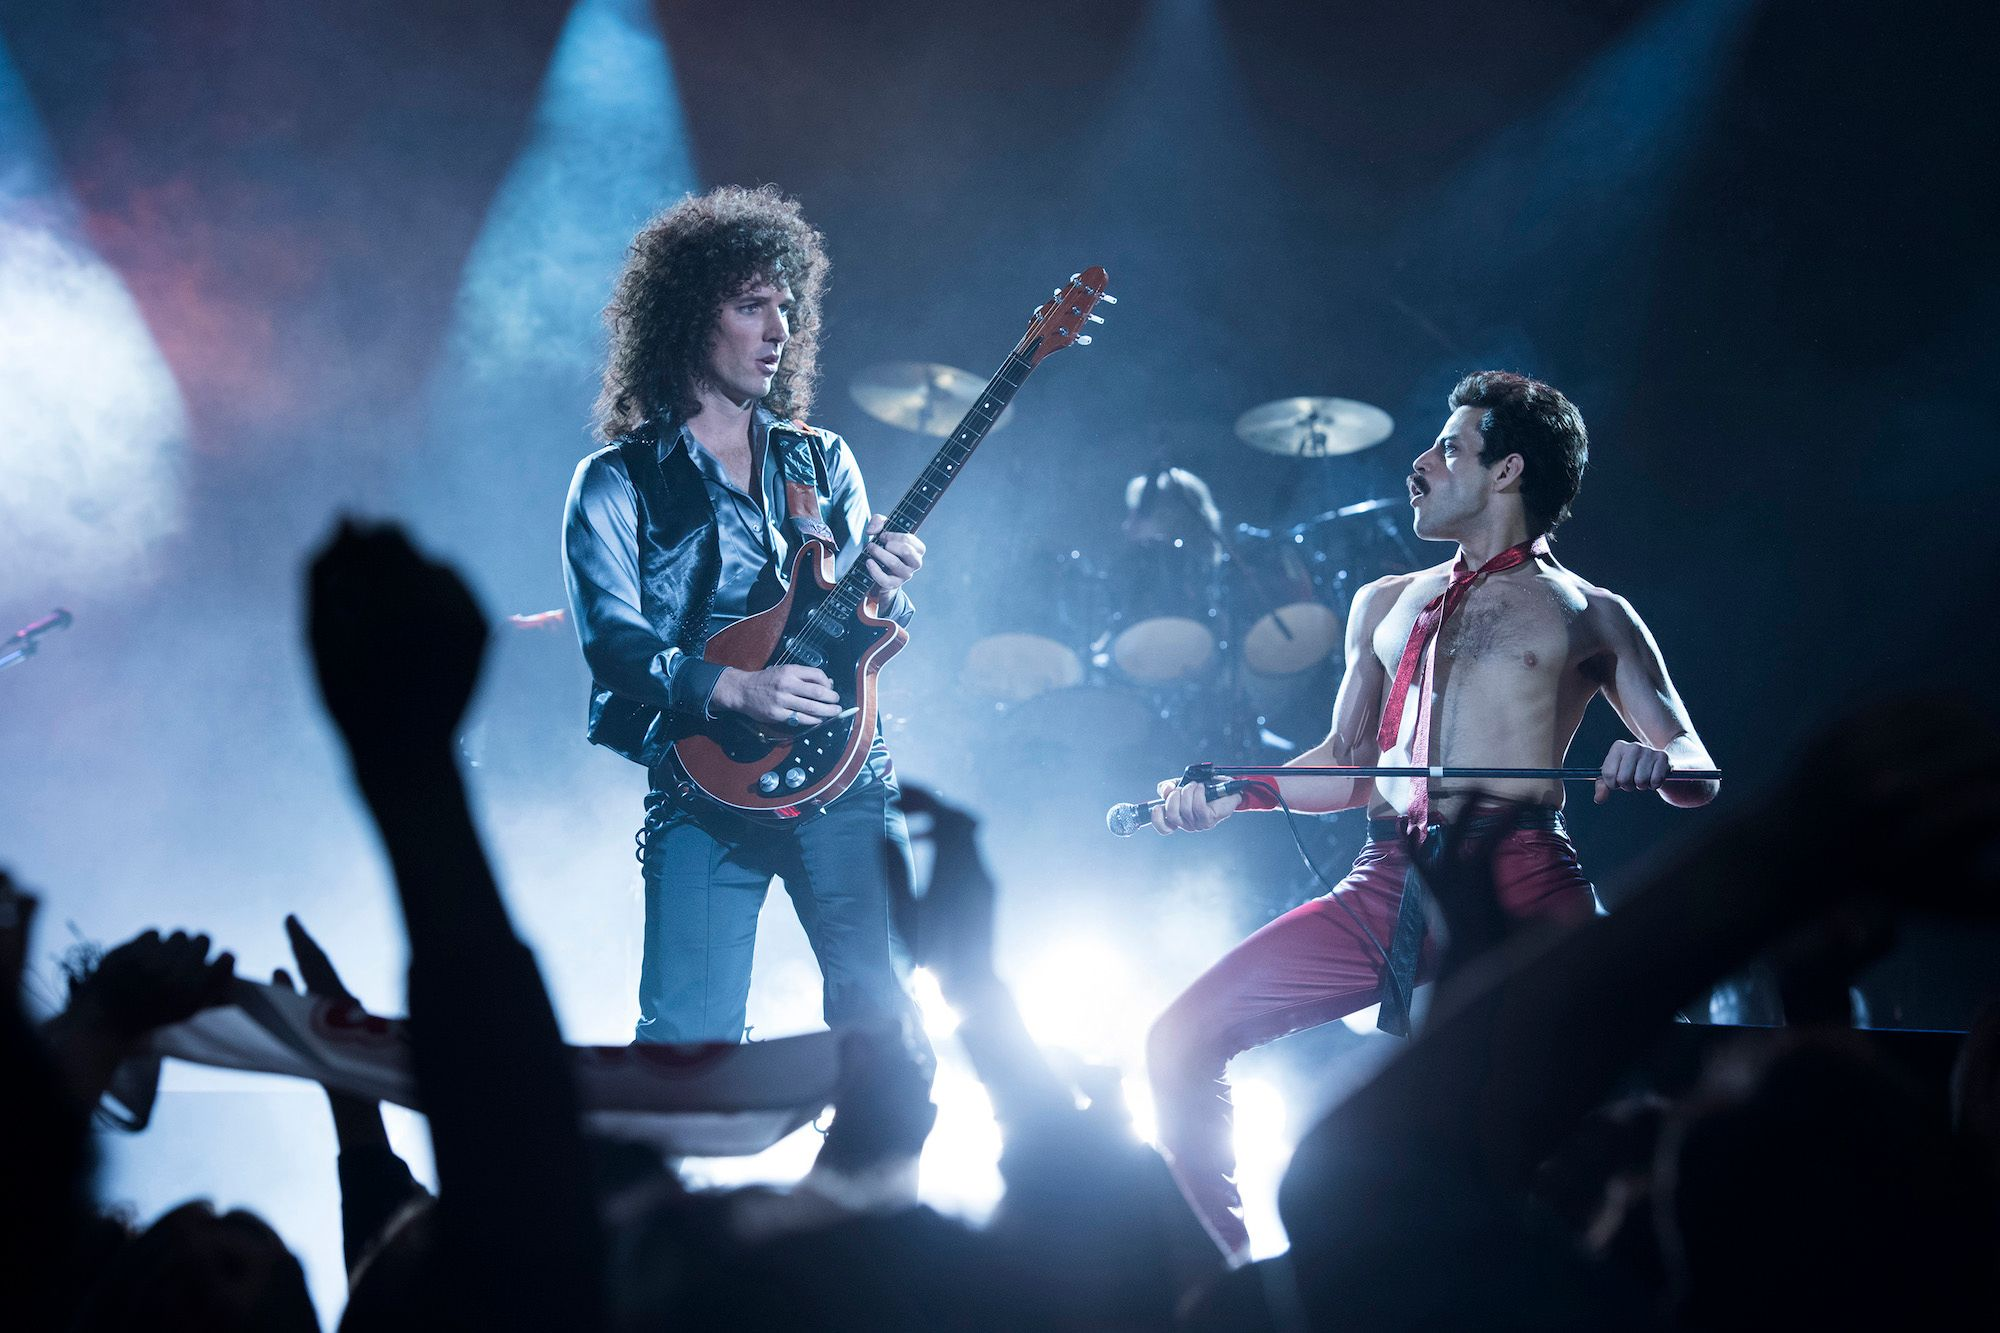 Latest Bohemian Rhapsody Clip Sees Cast Becoming Queen